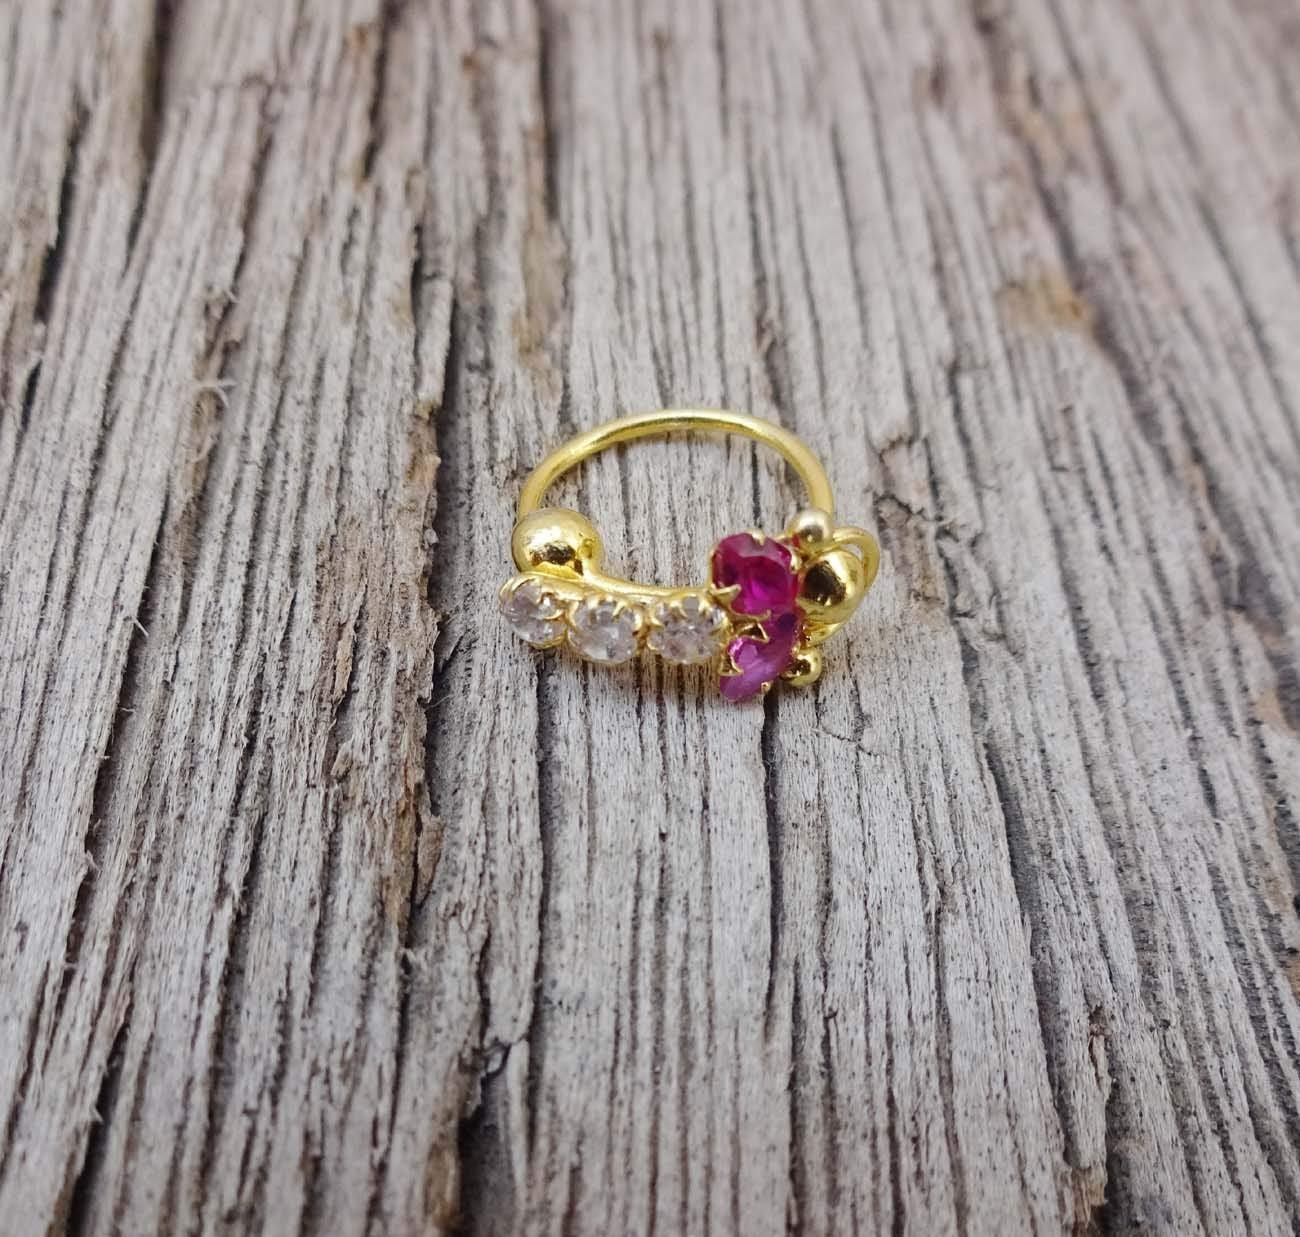 Gift For Her,Ruby Diamond Piercing,Crystal Nose Ring,Indian Gold Piercing,Gold Nose Hoop,Maharasthrian Nose Stud,Gold Nose Ring,Solid Gold Nose Ring,Indian Nose Jewelry,Silver Nose Ring TEJ596